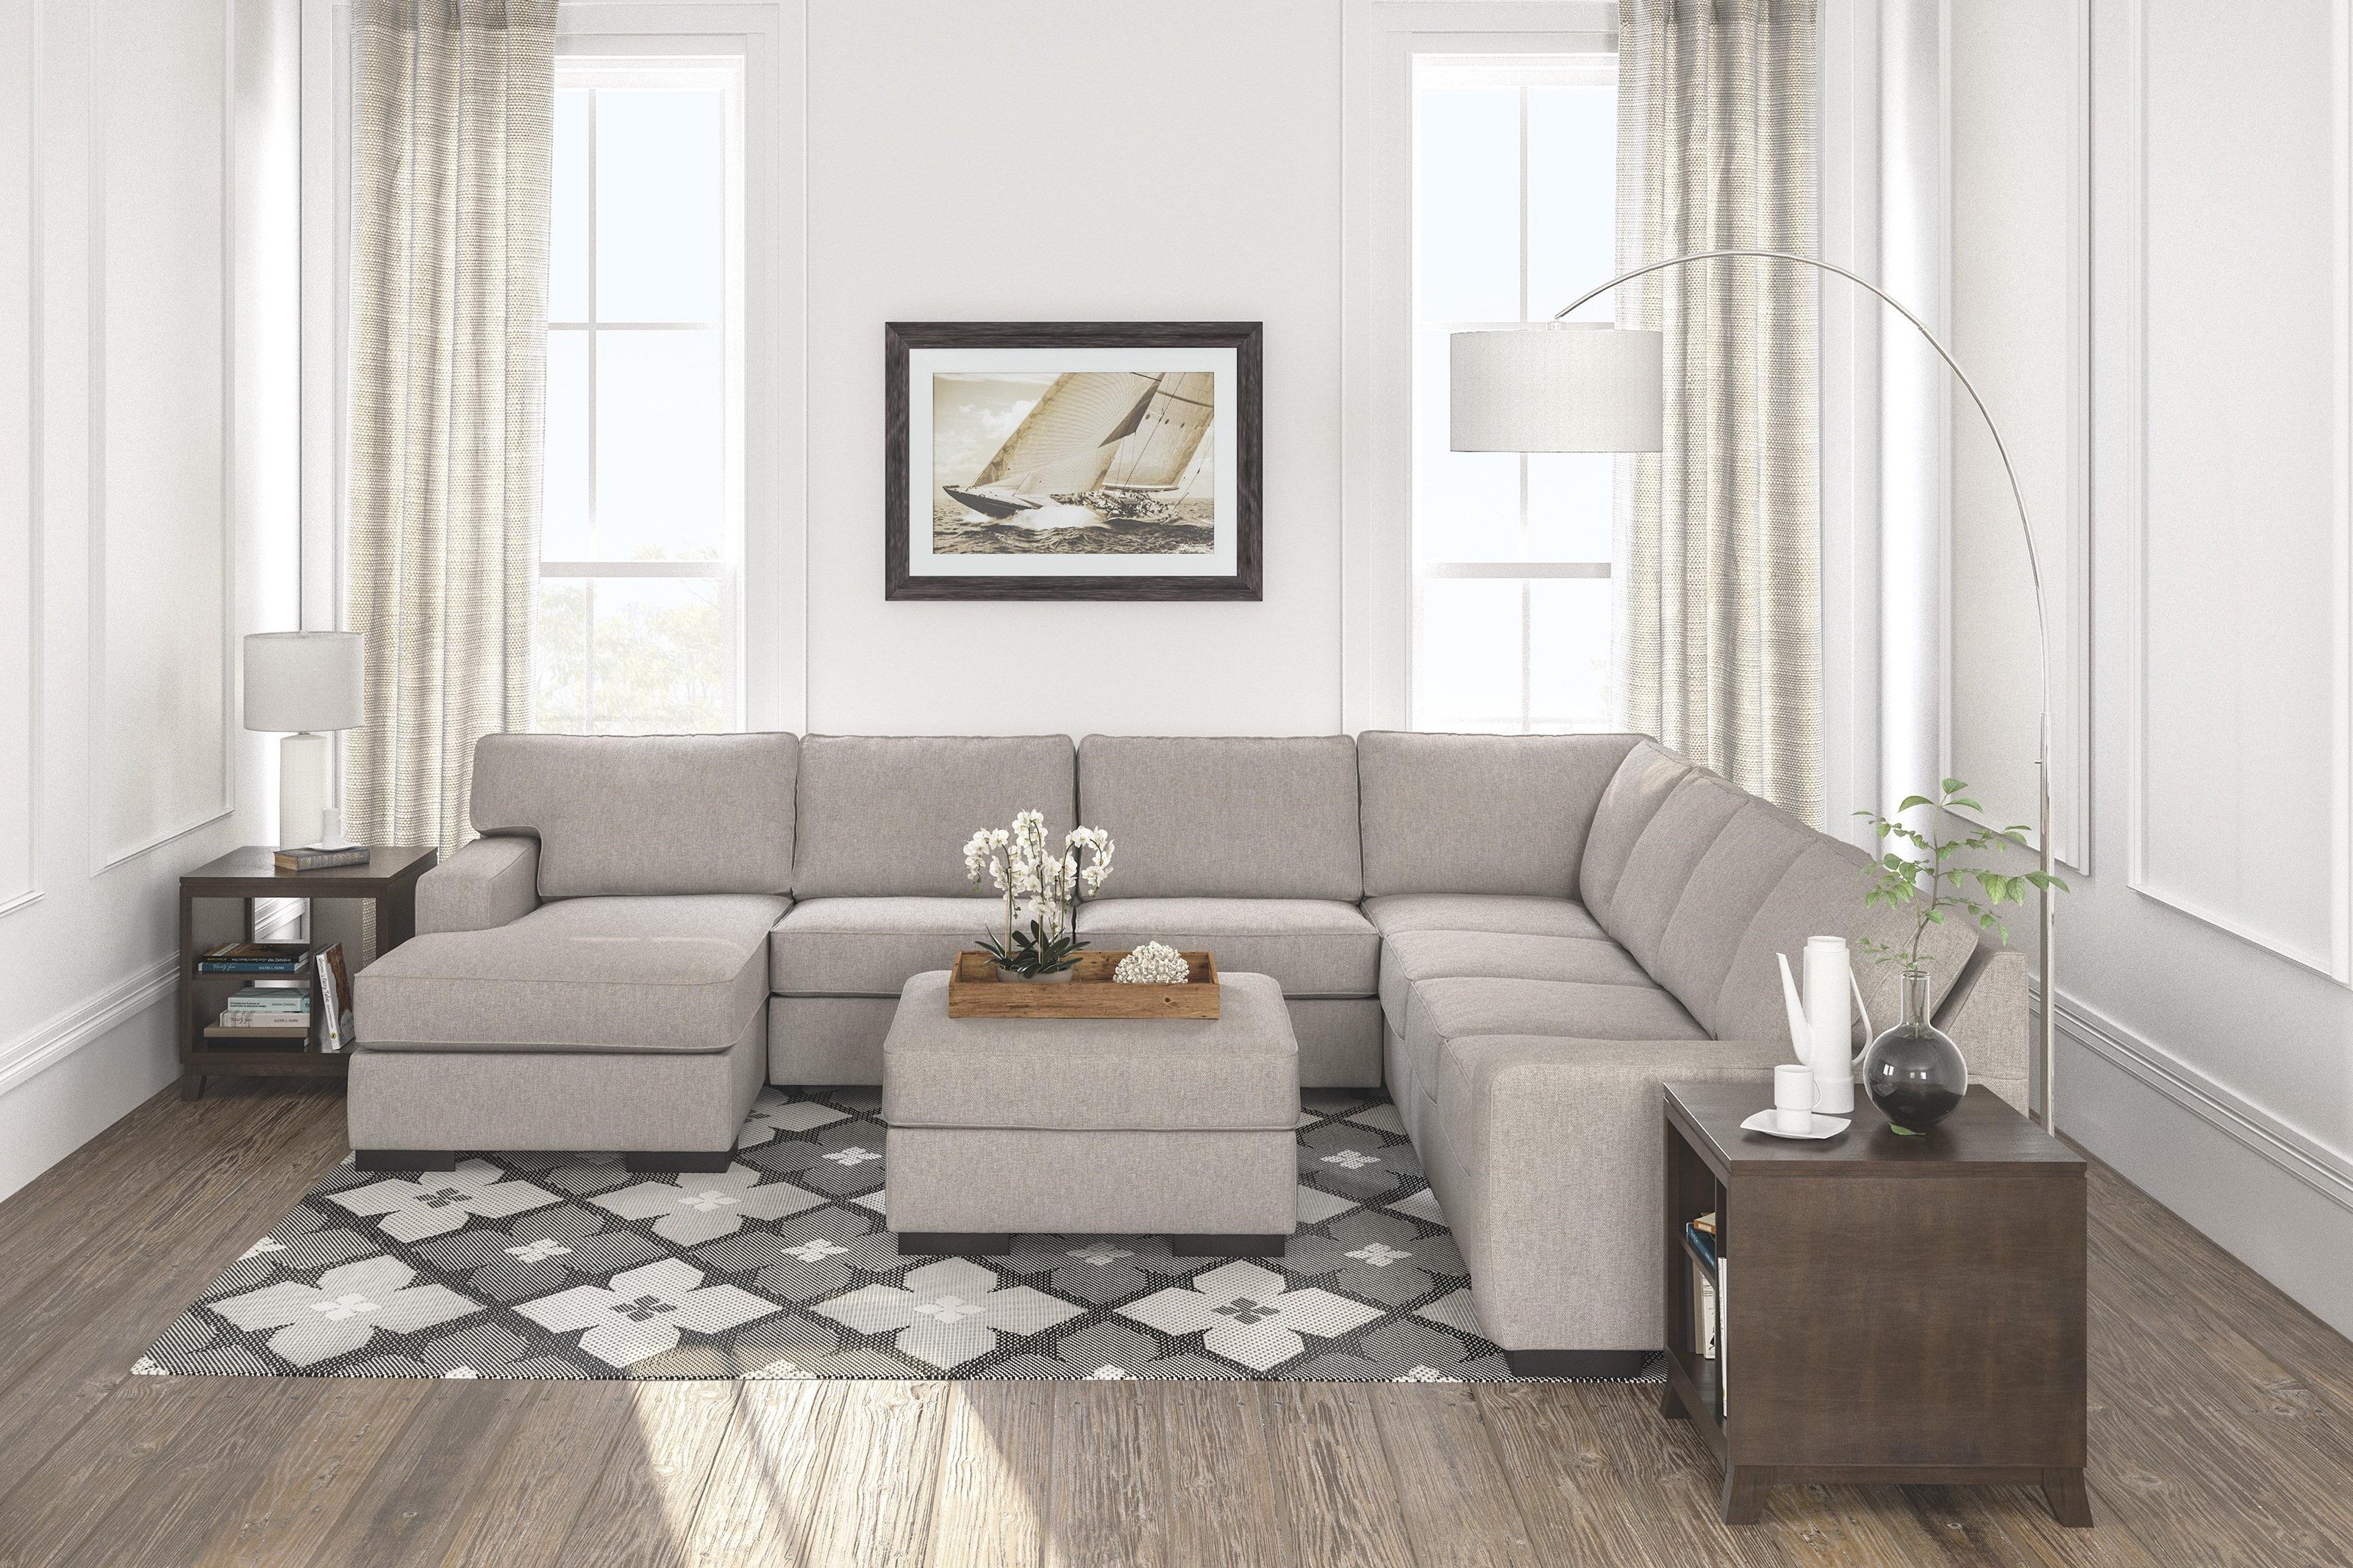 5 PC Sectional and Ottoman Set